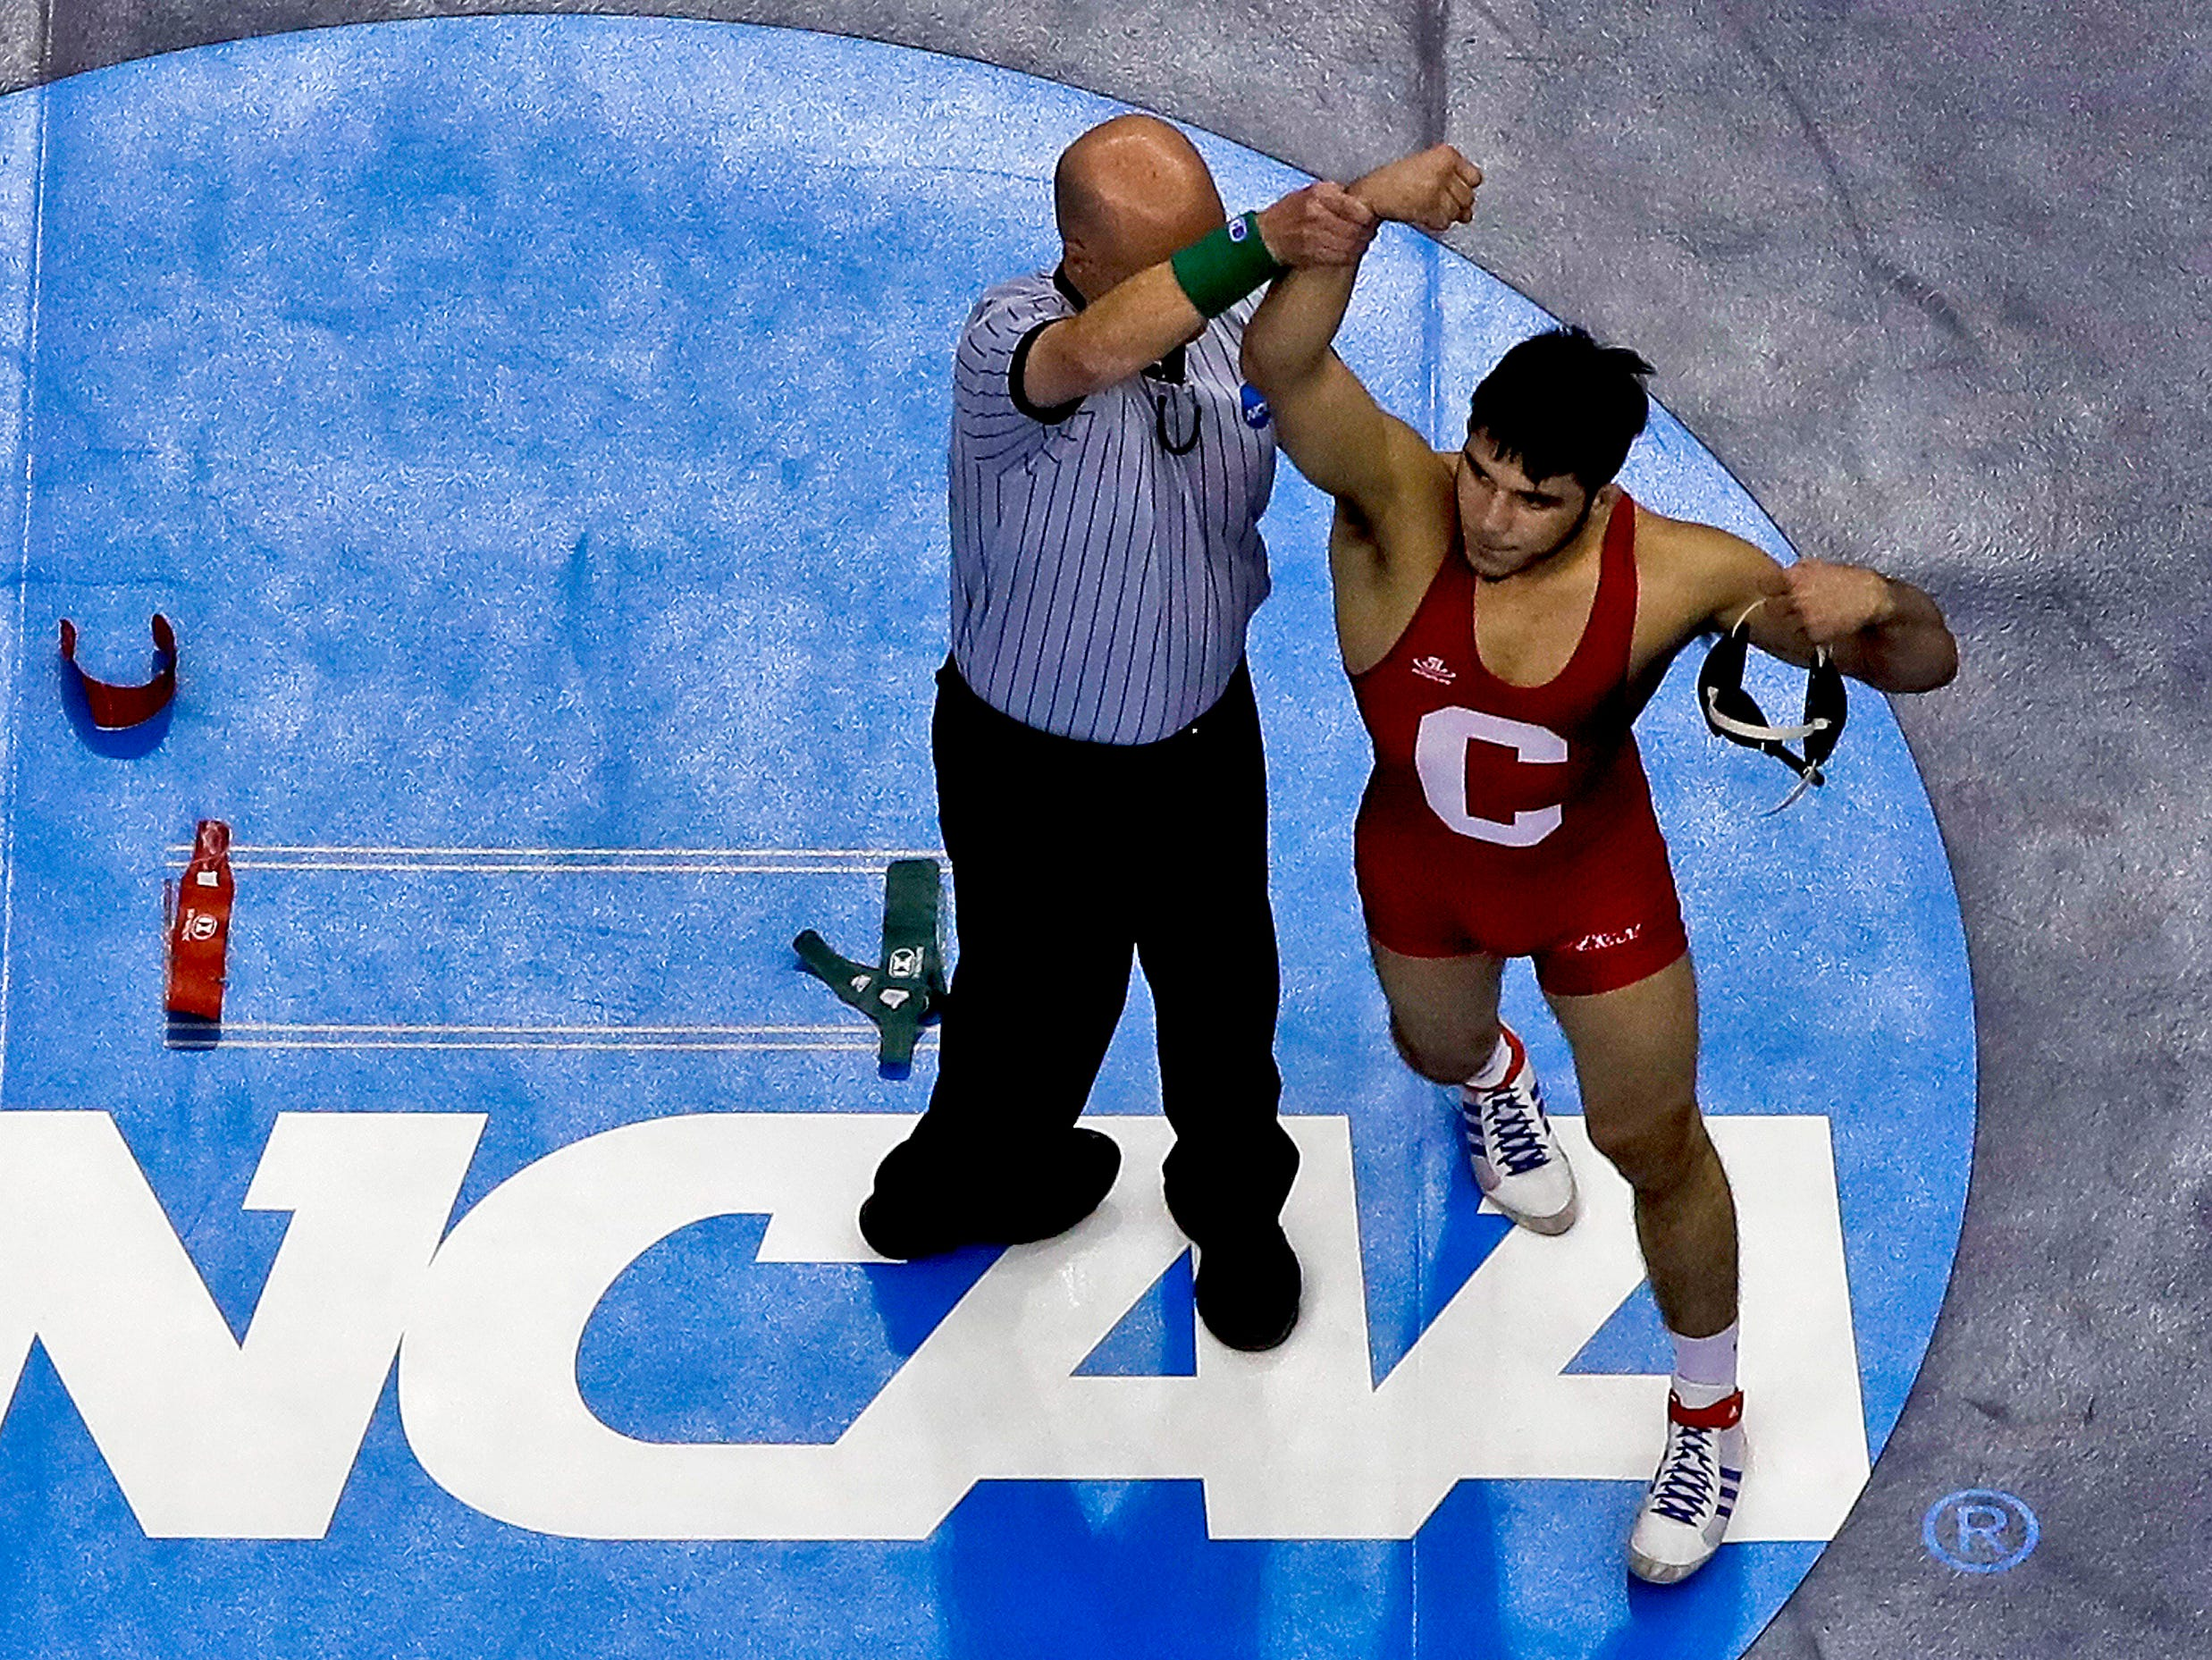 Cornell's Yianni Diakomihalis, right, celebrates his win over Ohio State's Joey McKenna in their 141-pound match in the finals of the NCAA wrestling championships Saturday, March 23, 2019 in Pittsburgh. (AP Photo/Gene J. Puskar)